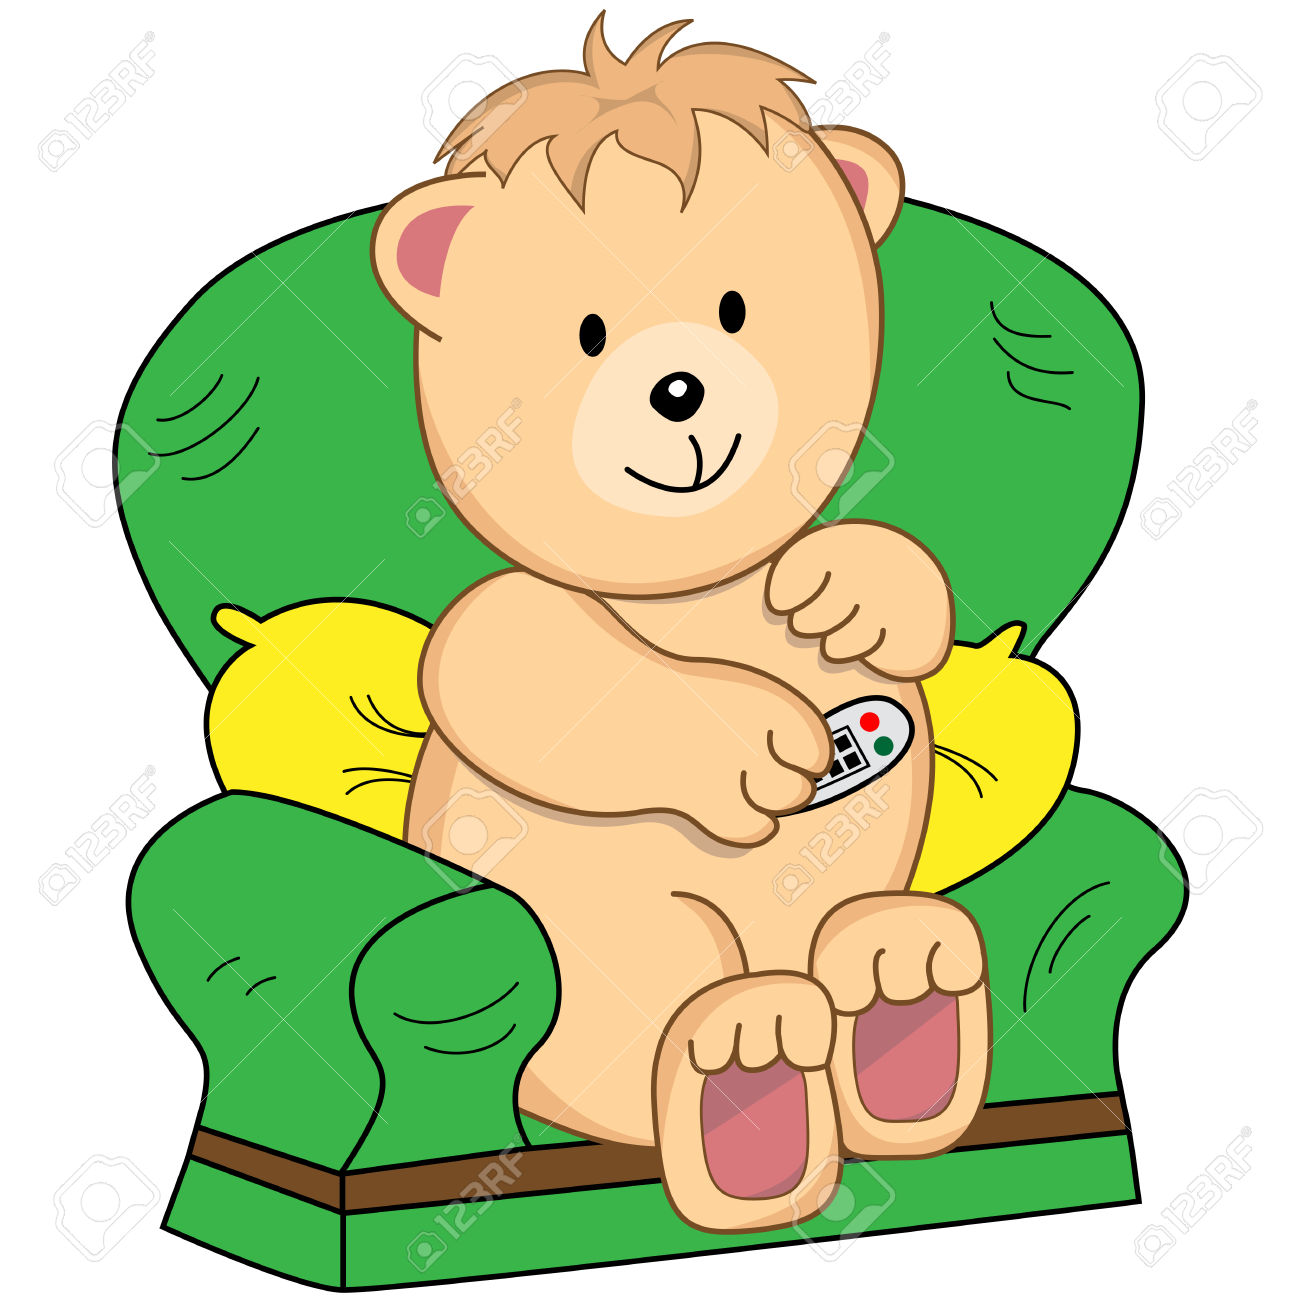 Bear Sitting In An Armchair Holding A TV Remote Control.